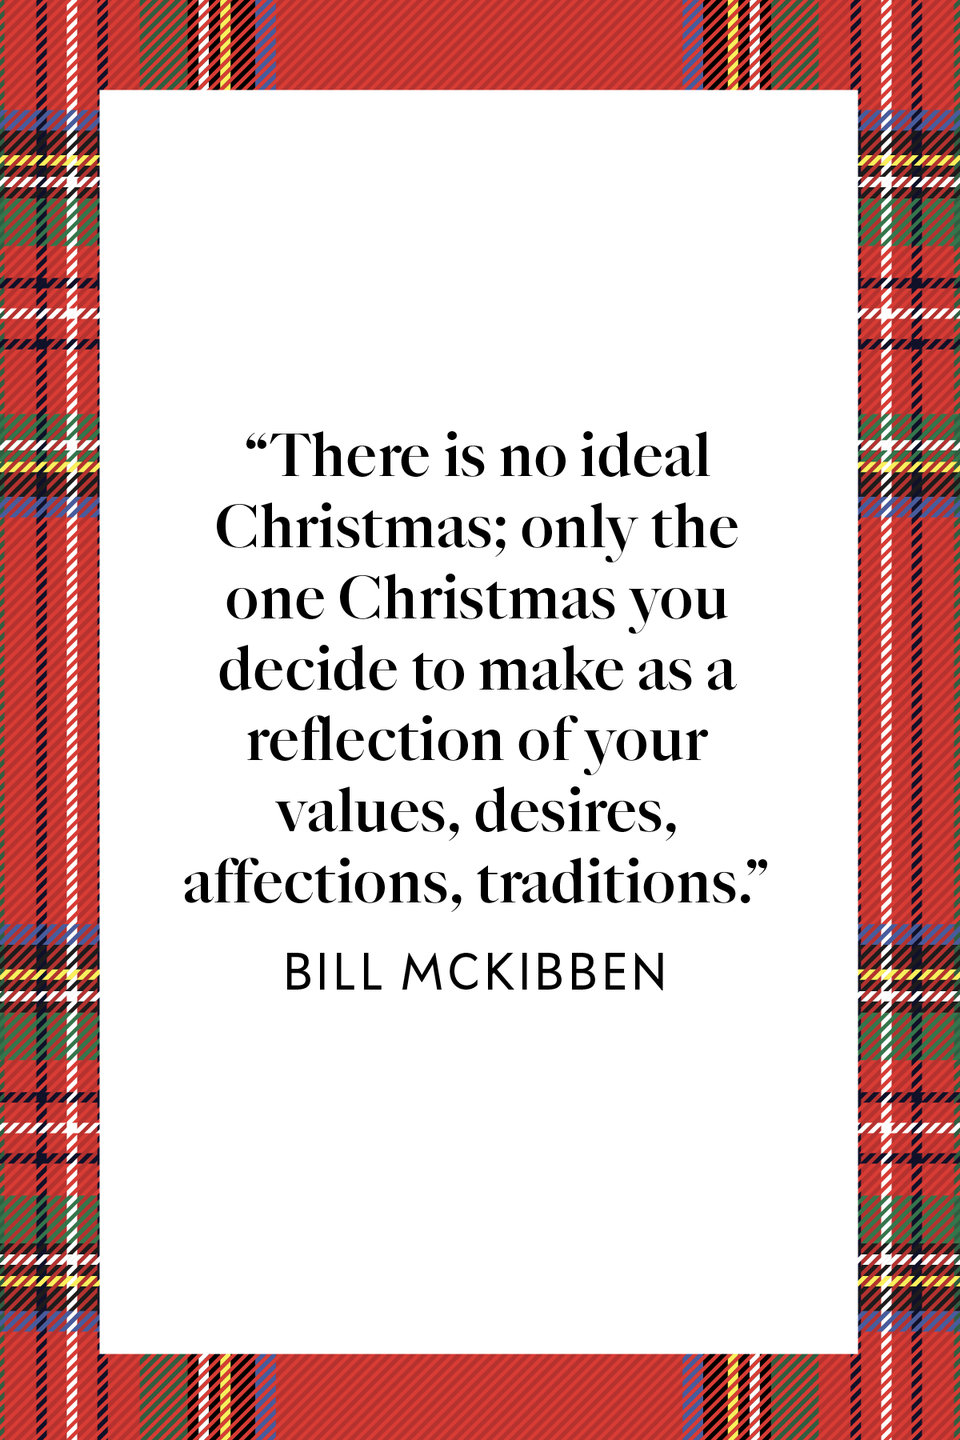 "<p>""There is no ideal Christmas; only the one Christmas you decide to make as a reflection of your values, desires, affections, traditions,"" environmentalist Bill McKibben said in the self-help book <a href=""https://www.amazon.com/Hundred-Dollar-Holiday-Joyful-Christmas/dp/1476754799?tag=syn-yahoo-20&ascsubtag=%5Bartid%7C10072.g.34536312%5Bsrc%7Cyahoo-us"" rel=""nofollow noopener"" target=""_blank"" data-ylk=""slk:Hundred Dollar Holiday: The Case For a More Joyful Christmas."" class=""link rapid-noclick-resp""><em>Hundred Dollar Holiday: The Case For a More Joyful Christmas</em>.</a></p>"